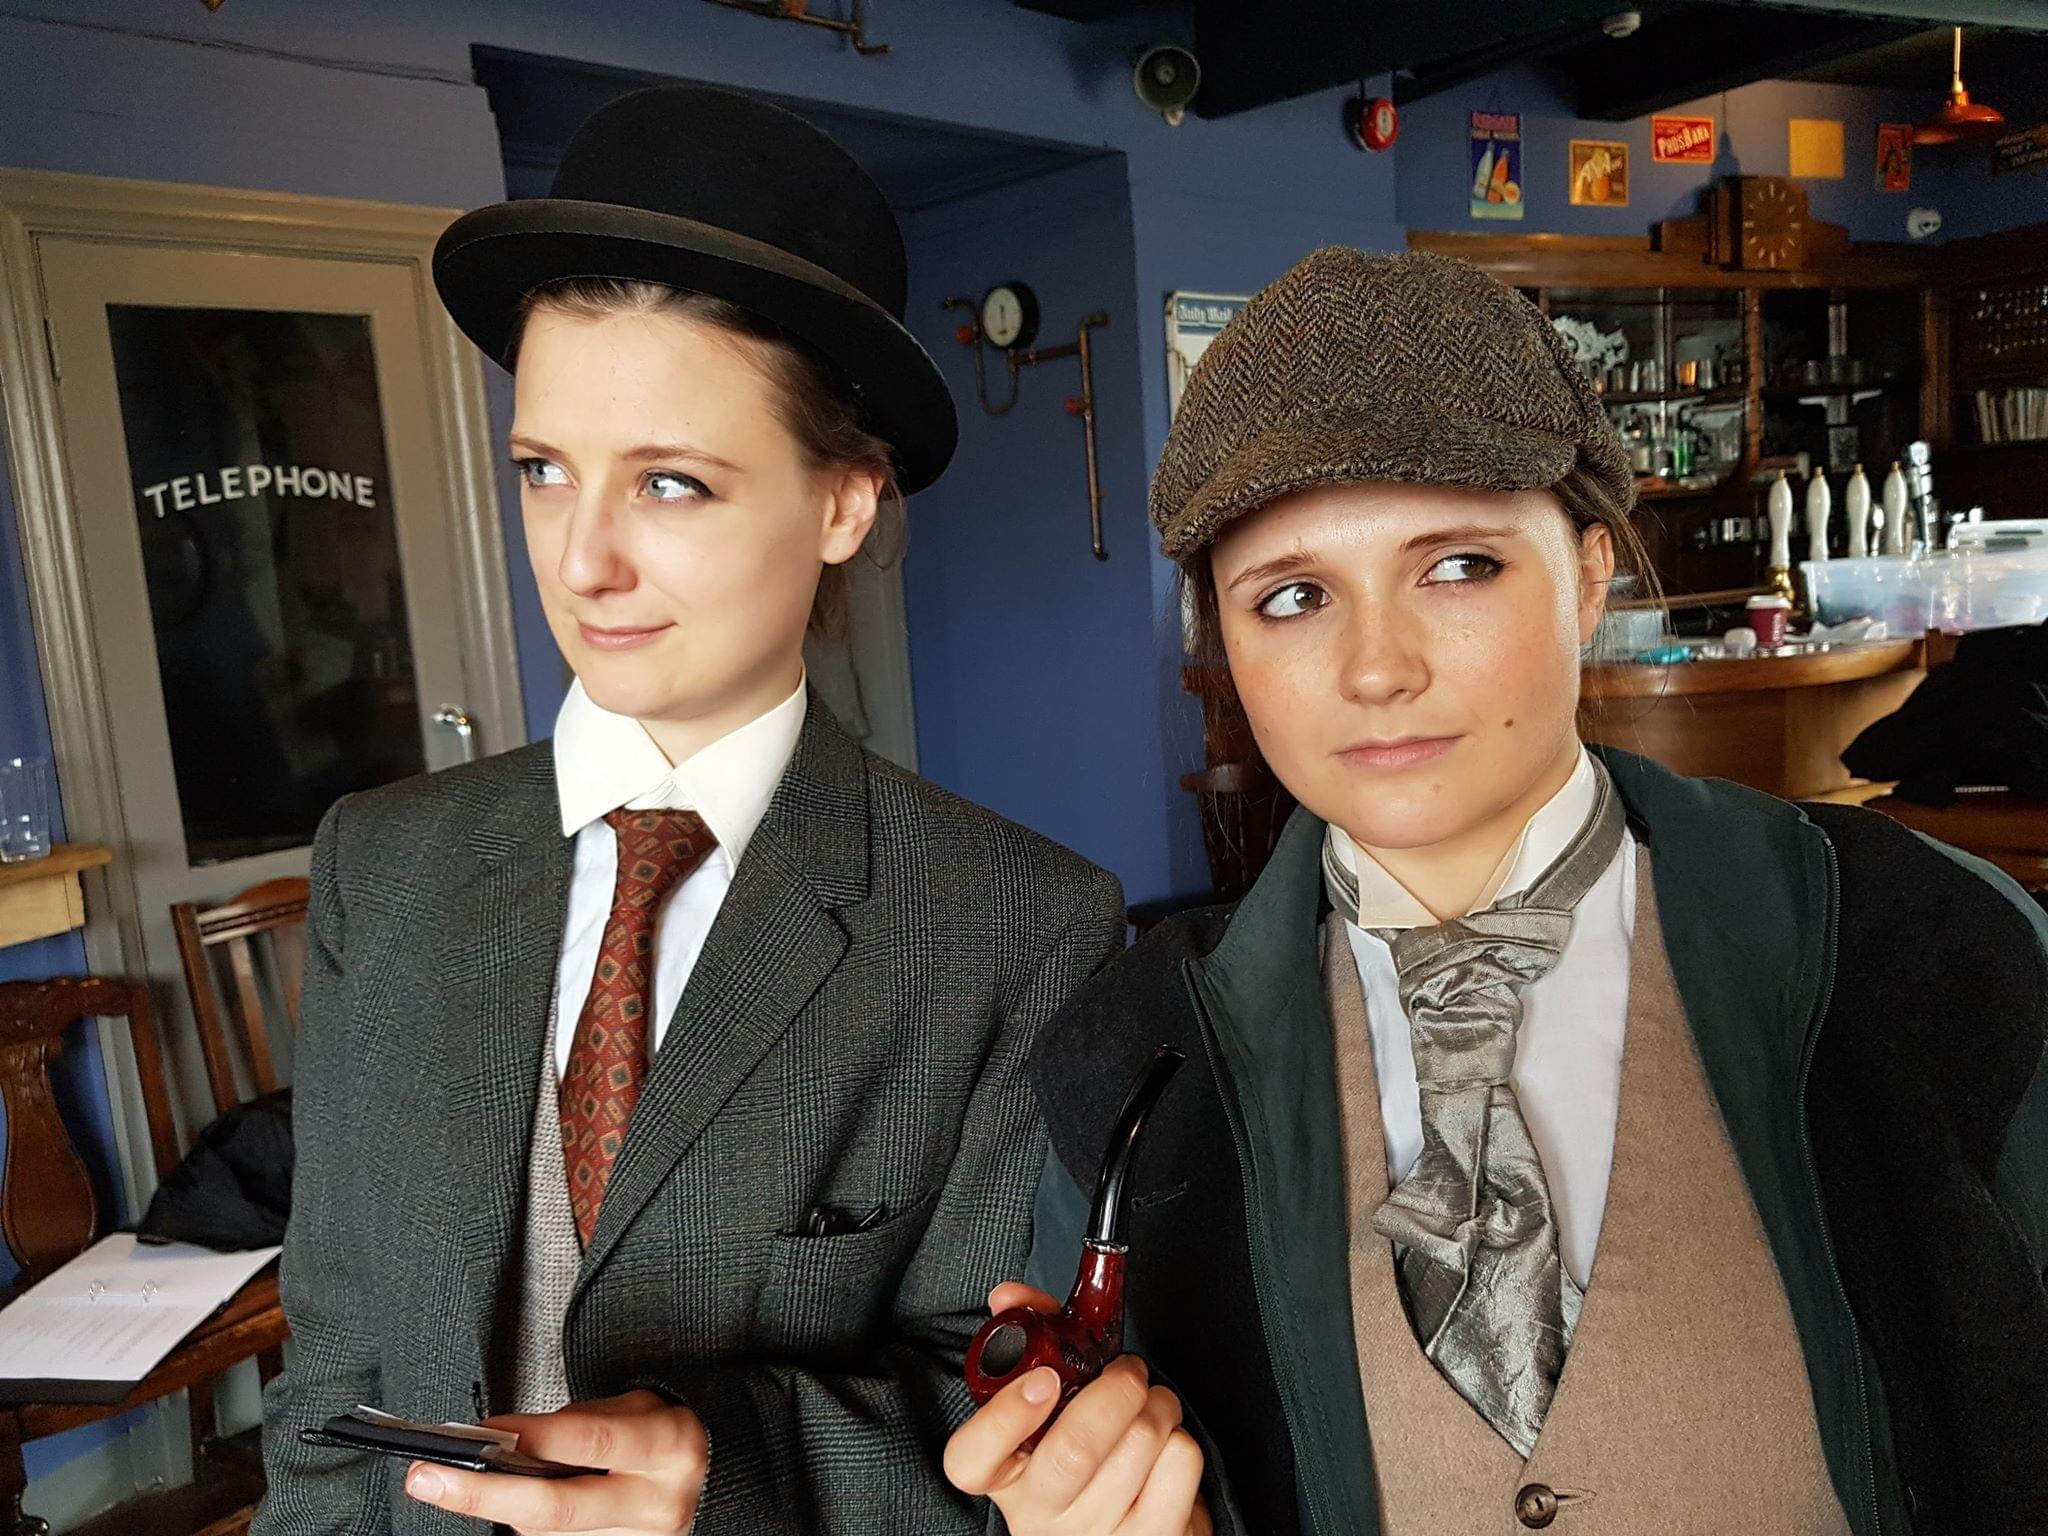 Sophie Milnes and Jasmine Atkins-Smart, rehearsing for The Accidental Adventures of Sherlock Holmes